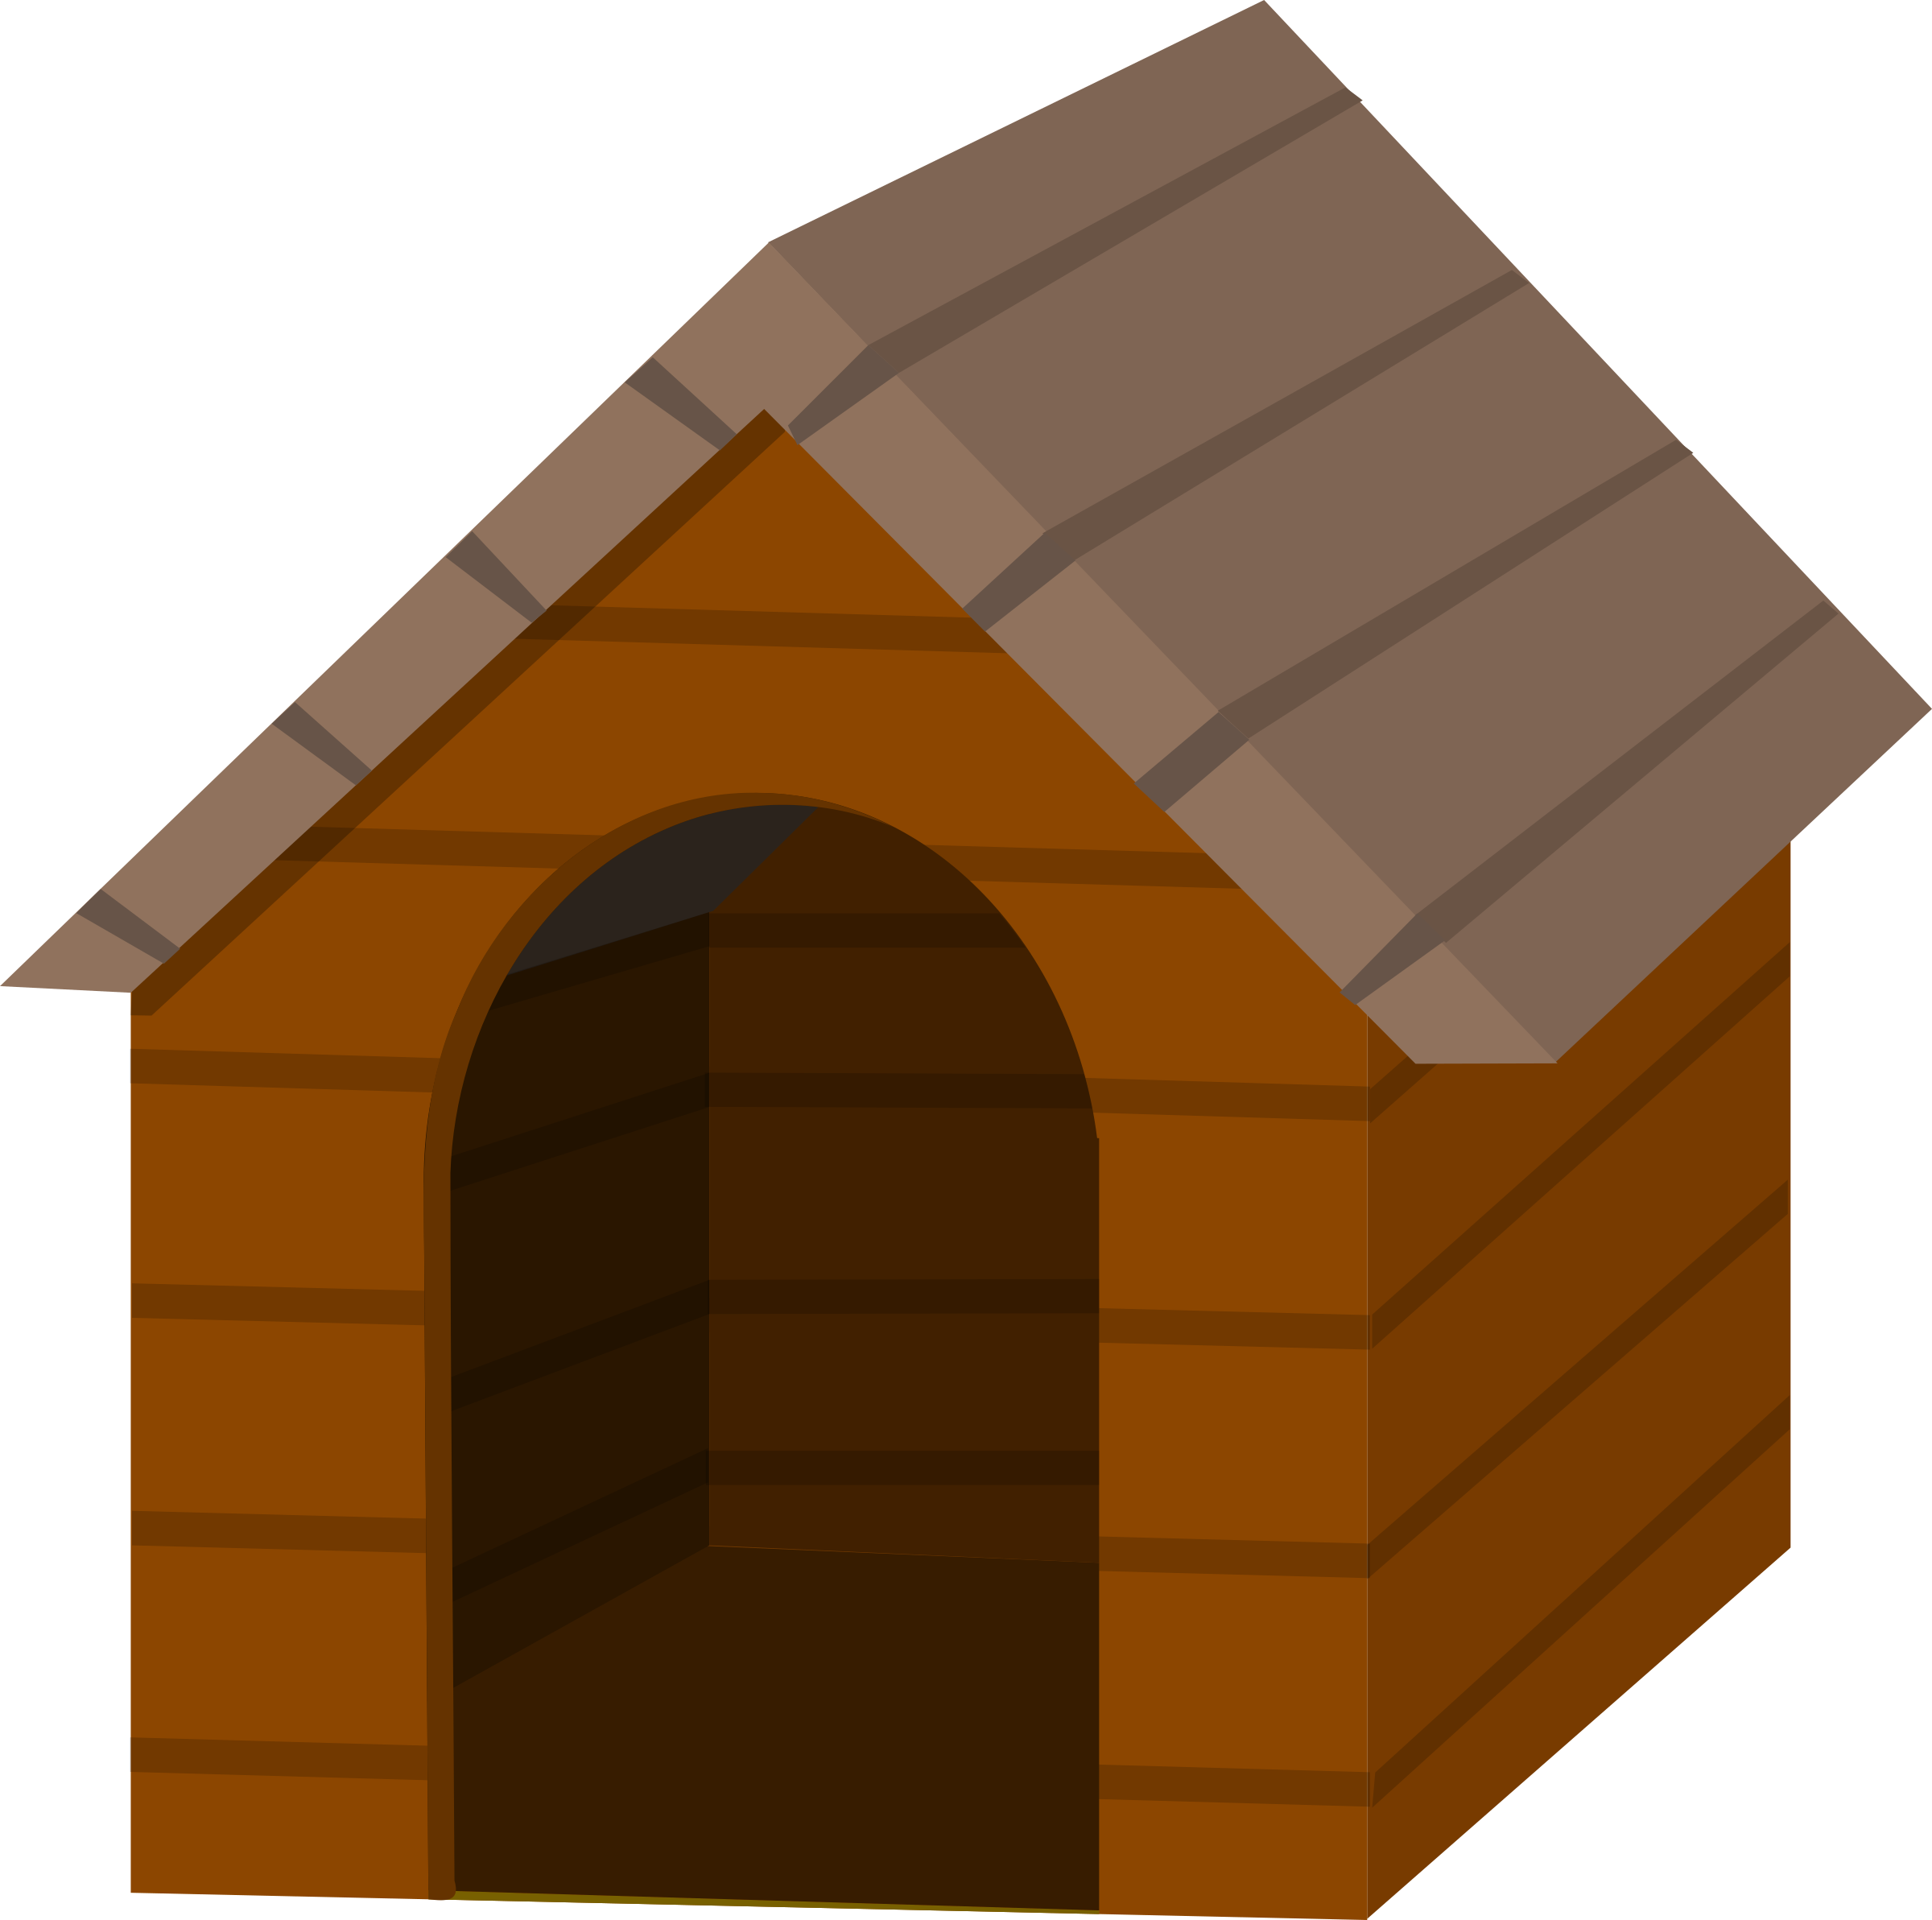 Clipart house brown. Doghouse big image png